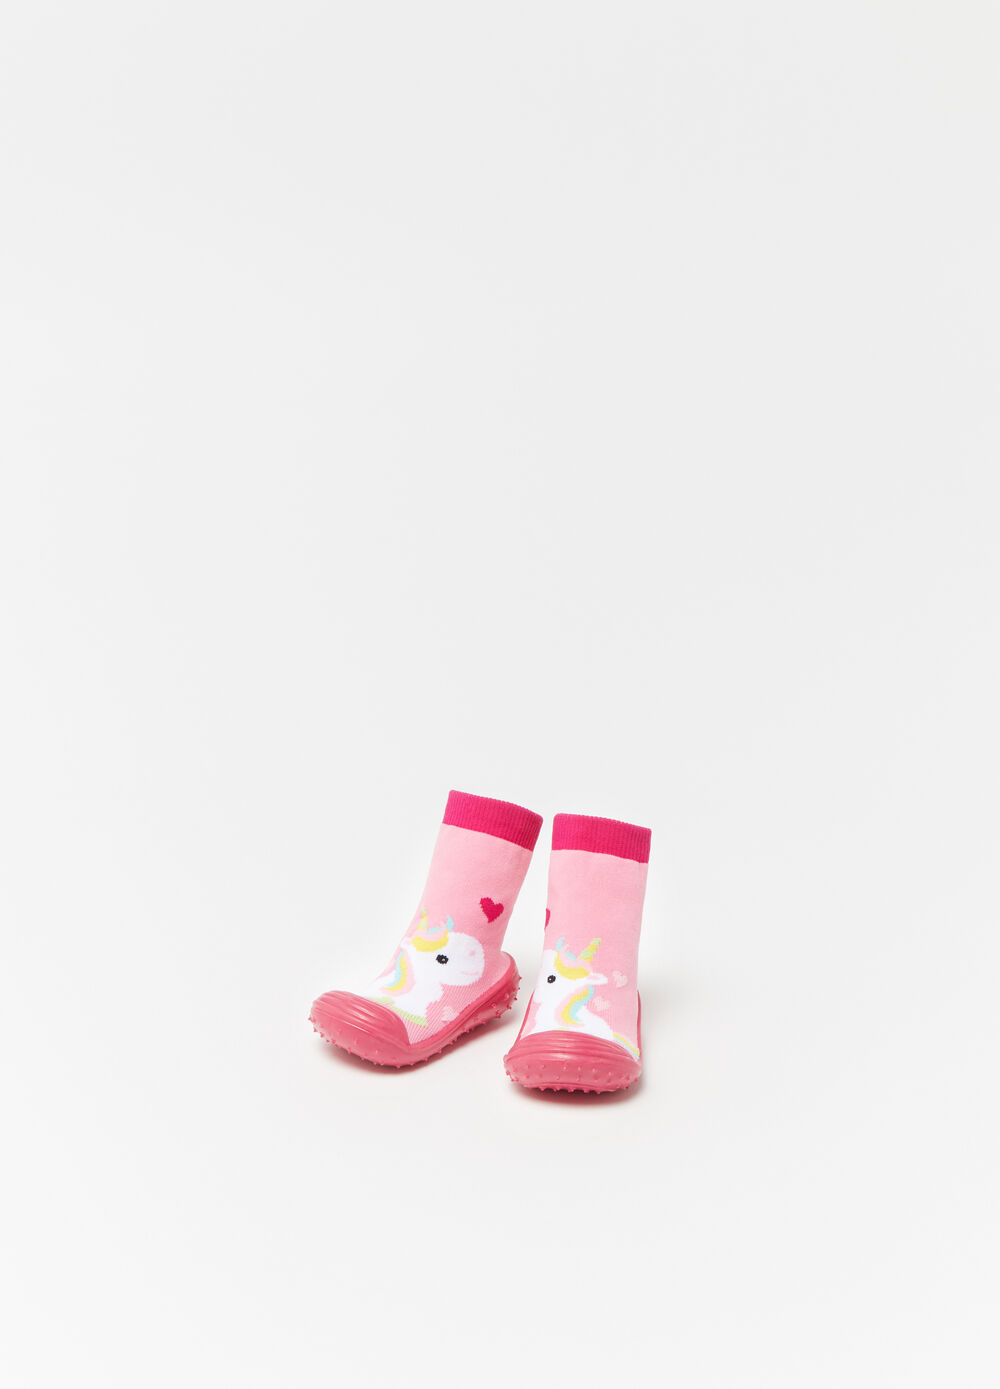 Baby shoes with high ankles and unicorn